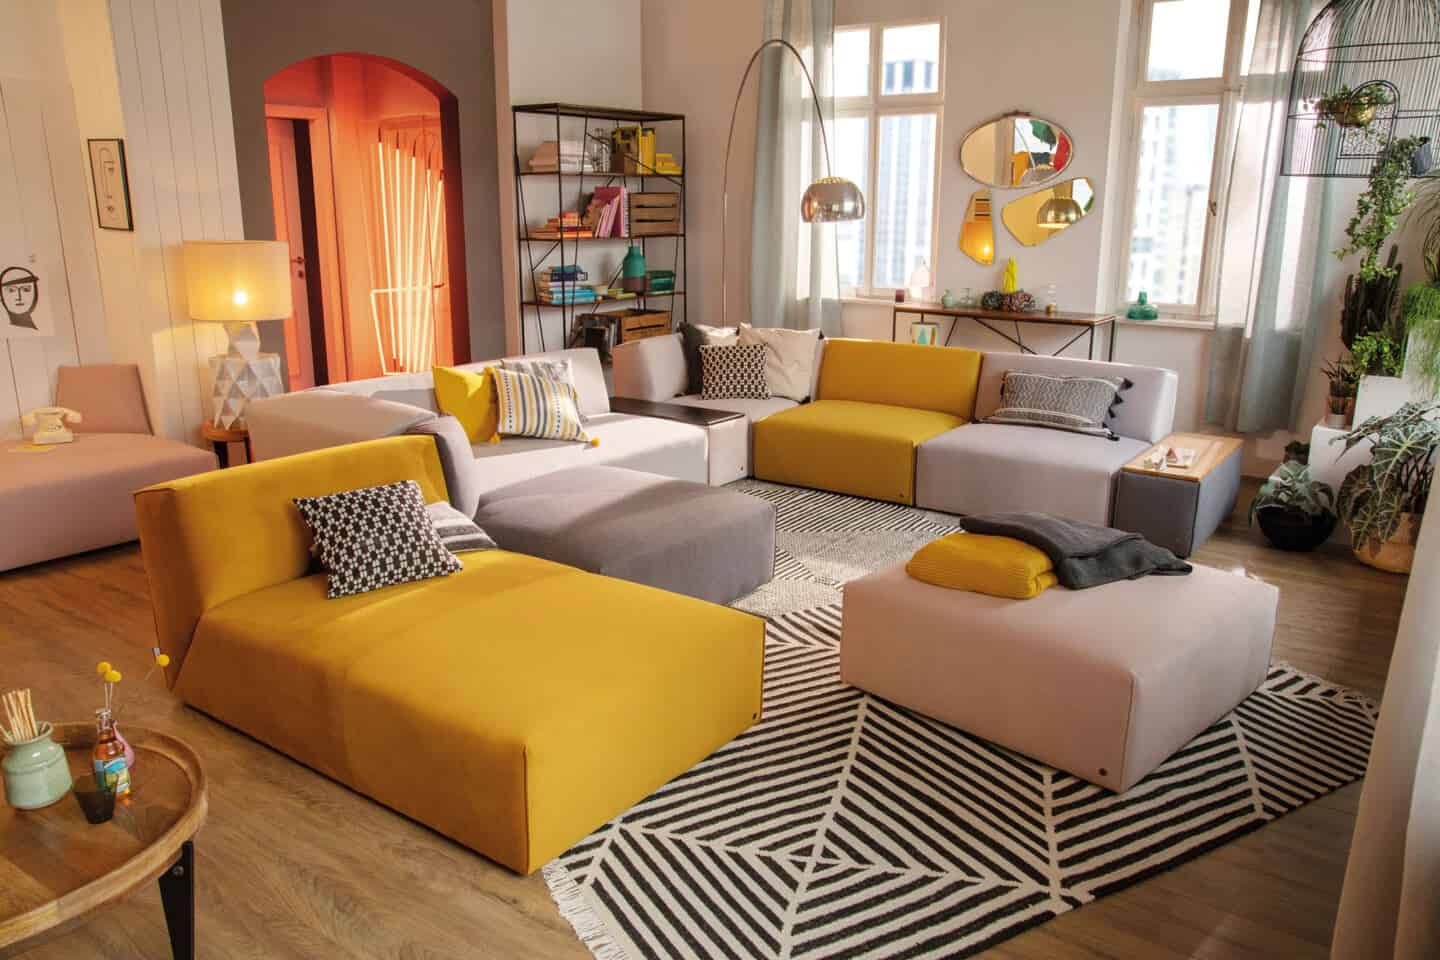 Pantone Colour of the Year 2021 - Illuminating. The colour psychology behind using yellow in interiors. A modular sofa from Tom Tailor Home with sections in yellow and grey in a living room